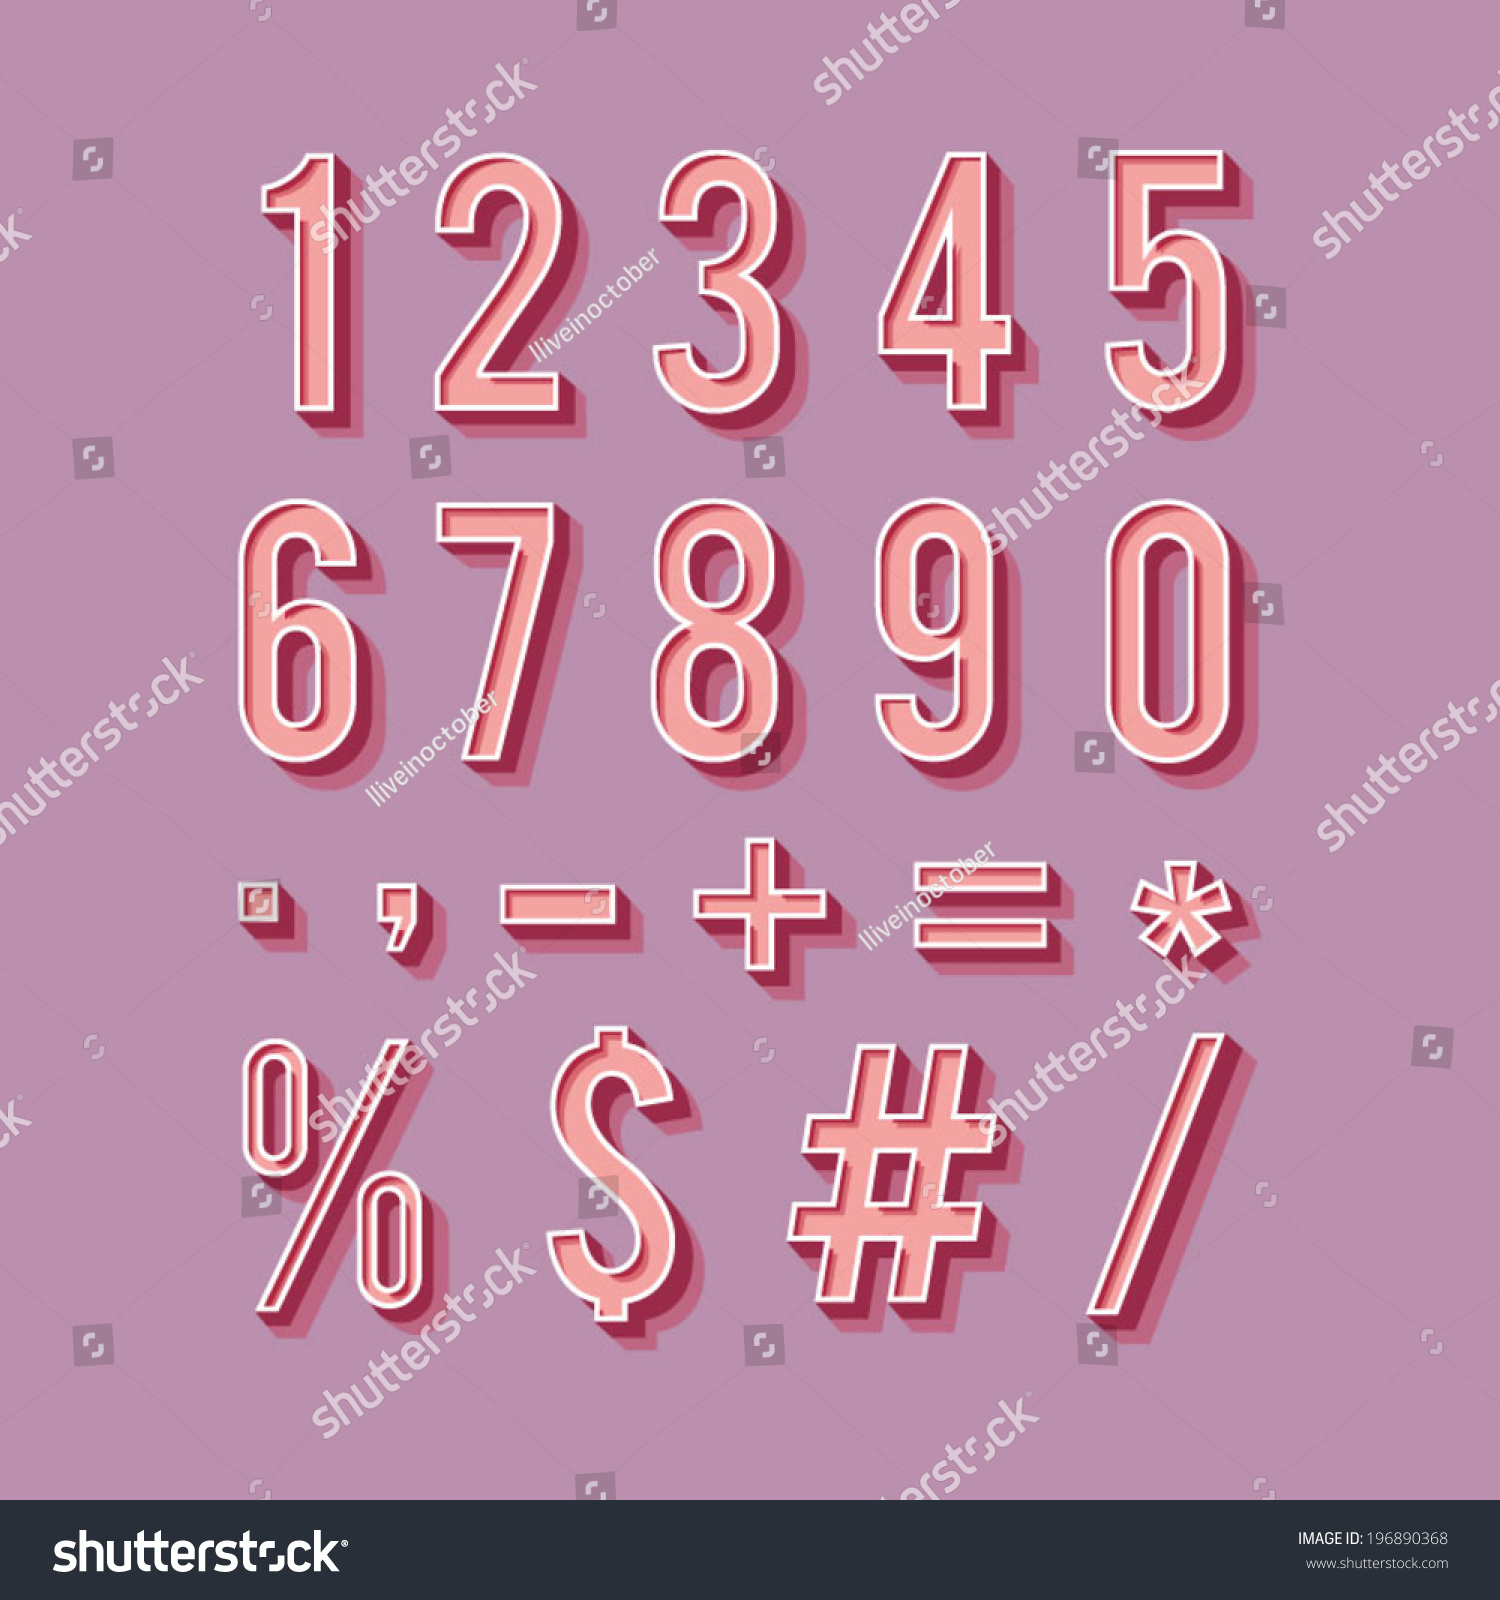 Vintage Typography Set Retro Numbers Symbols Stock Vector ...